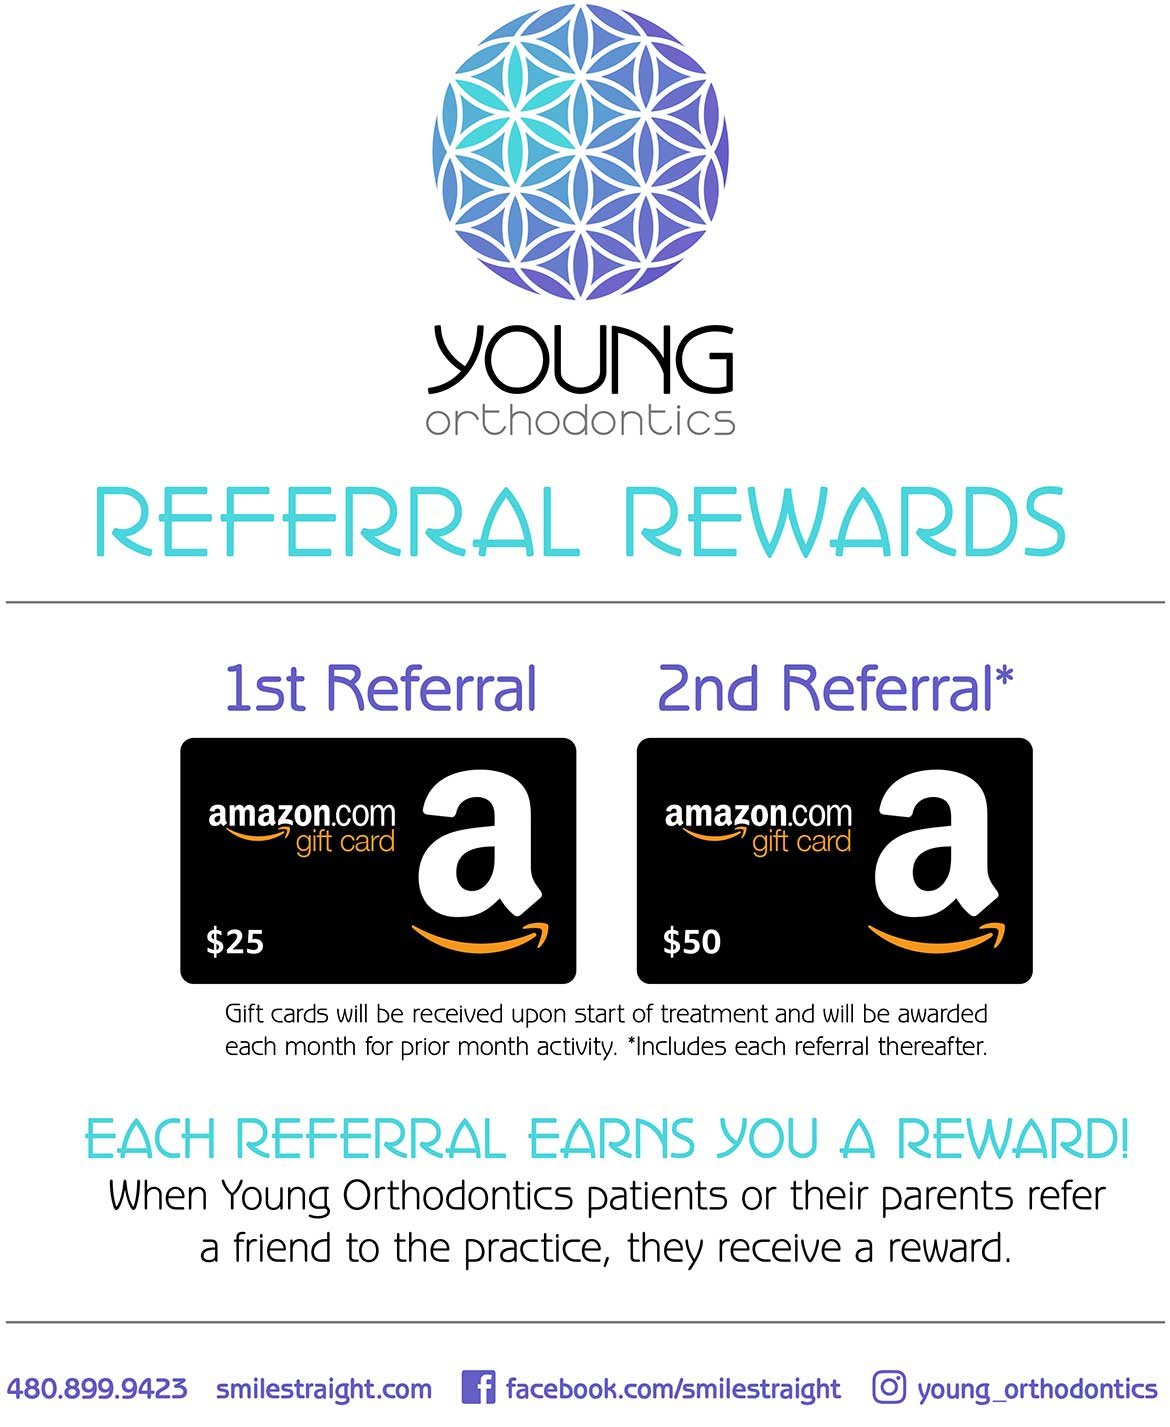 Young Orthodontics Referral Rewards